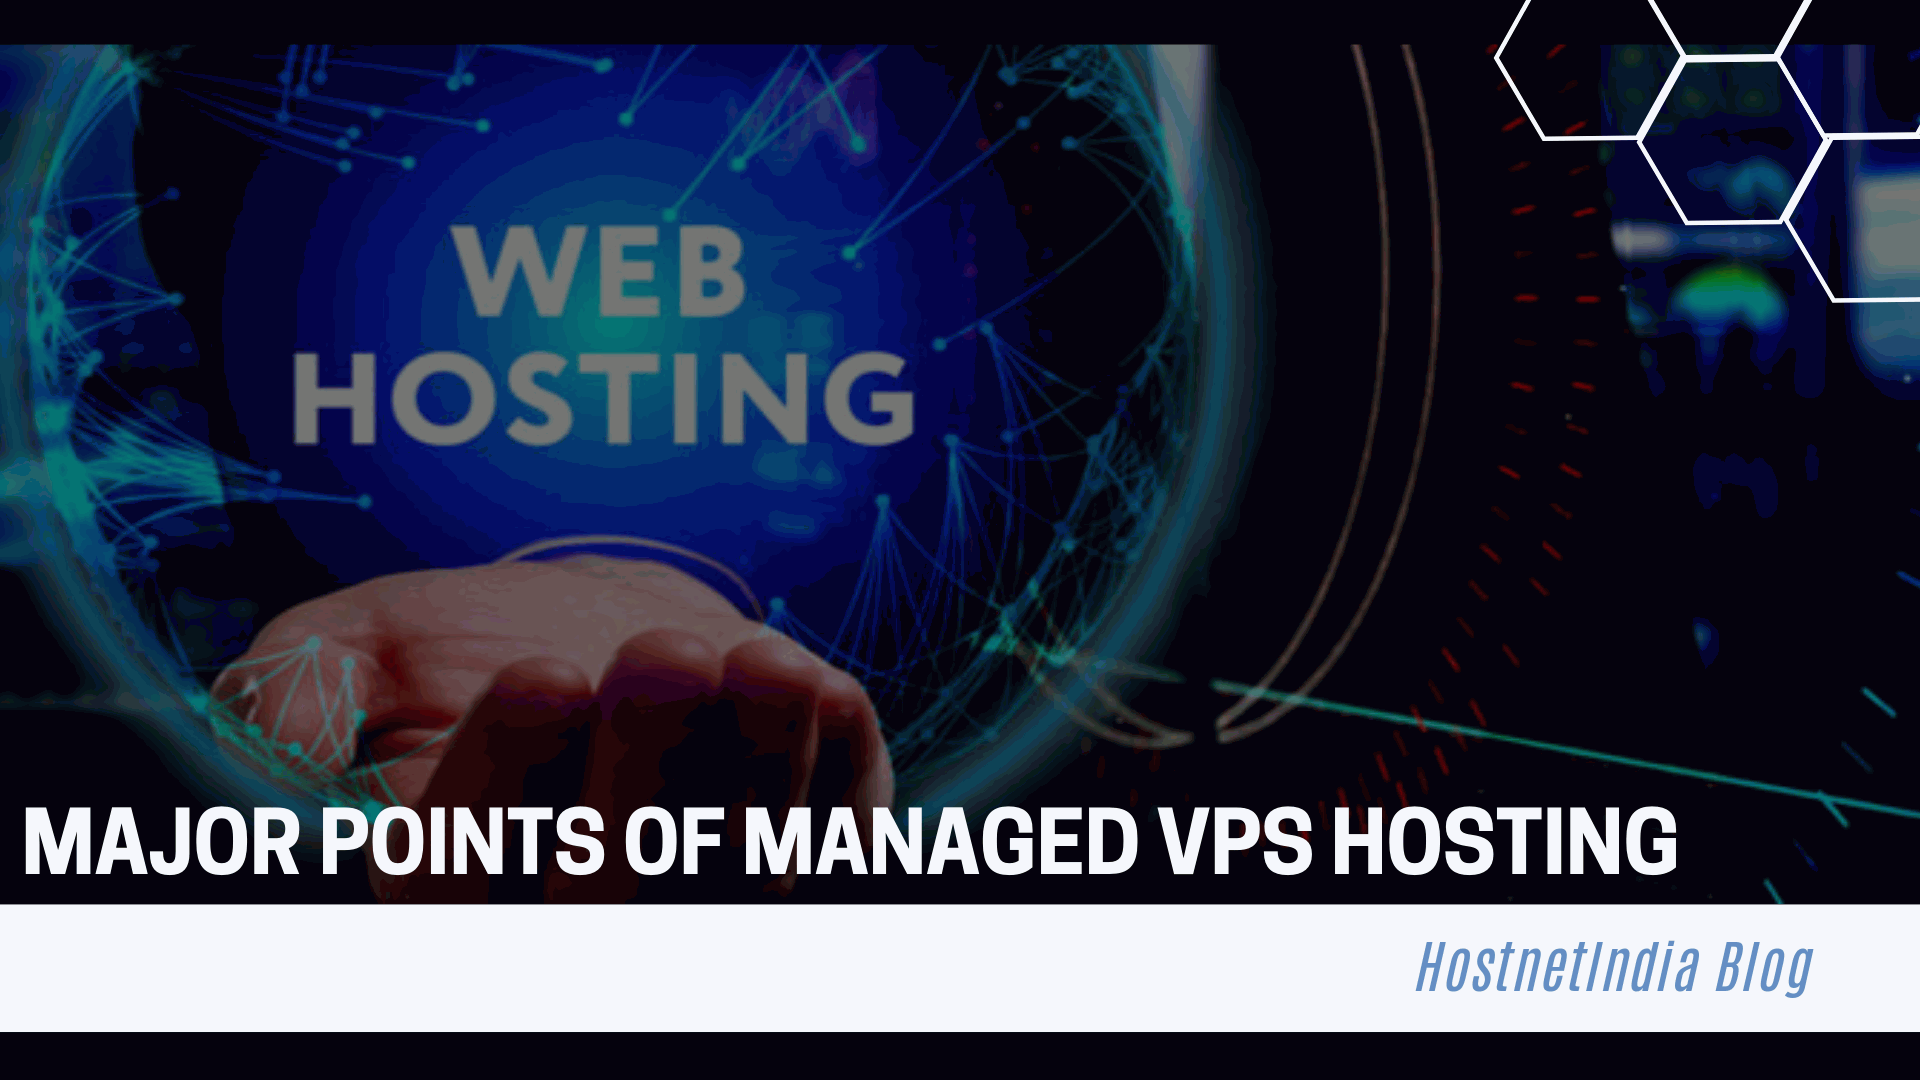 Major Points of Managed VPS Hosting